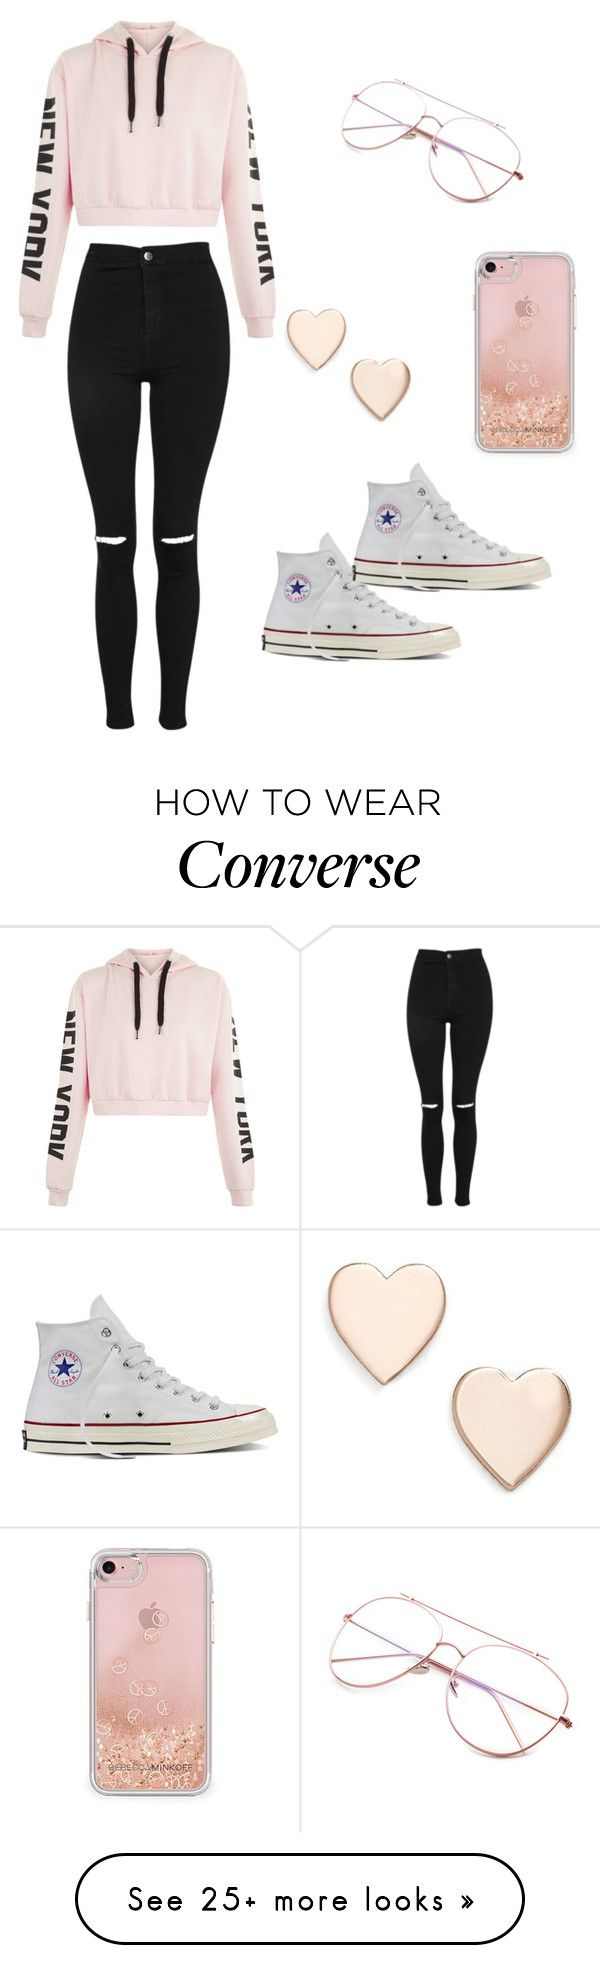 """Uniform"" by aarya-tulasi on Polyvore featuring Topshop, Poppy Finch, Rebecca Minkoff and Converse"